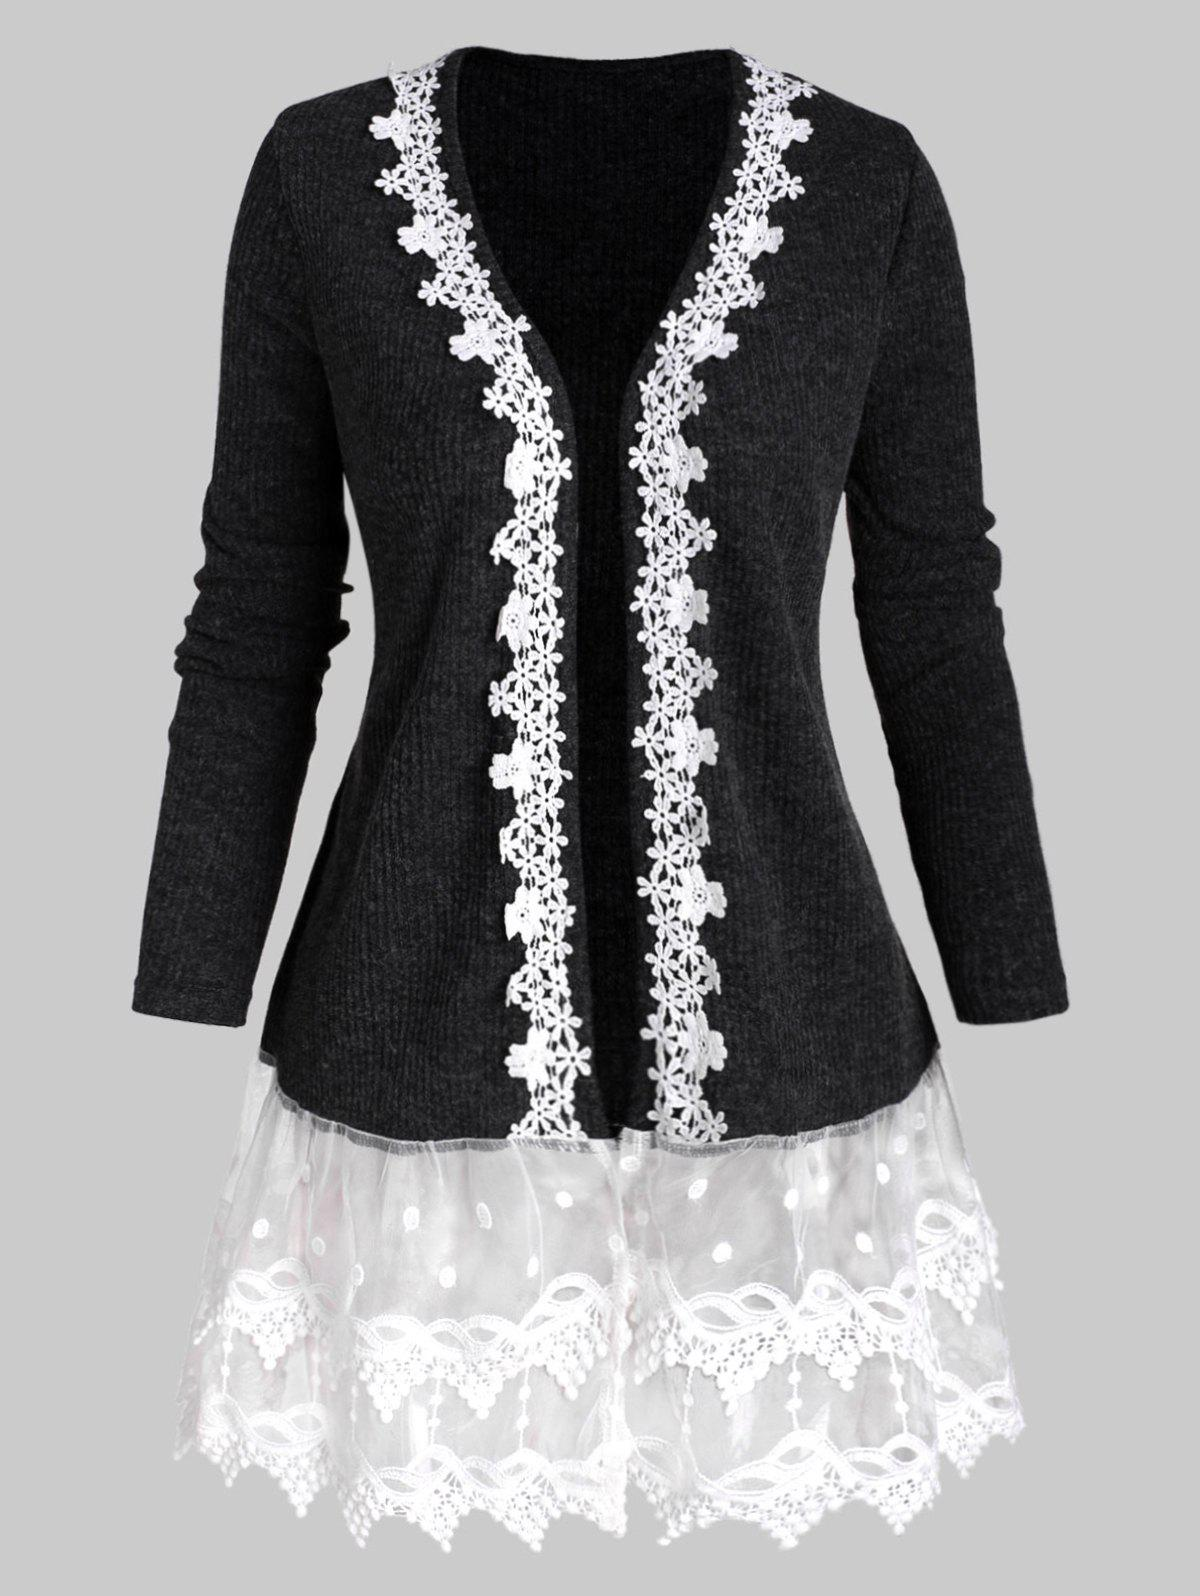 Store Open Front Ribbed Lace Mesh Panel Plus Size Cardigan